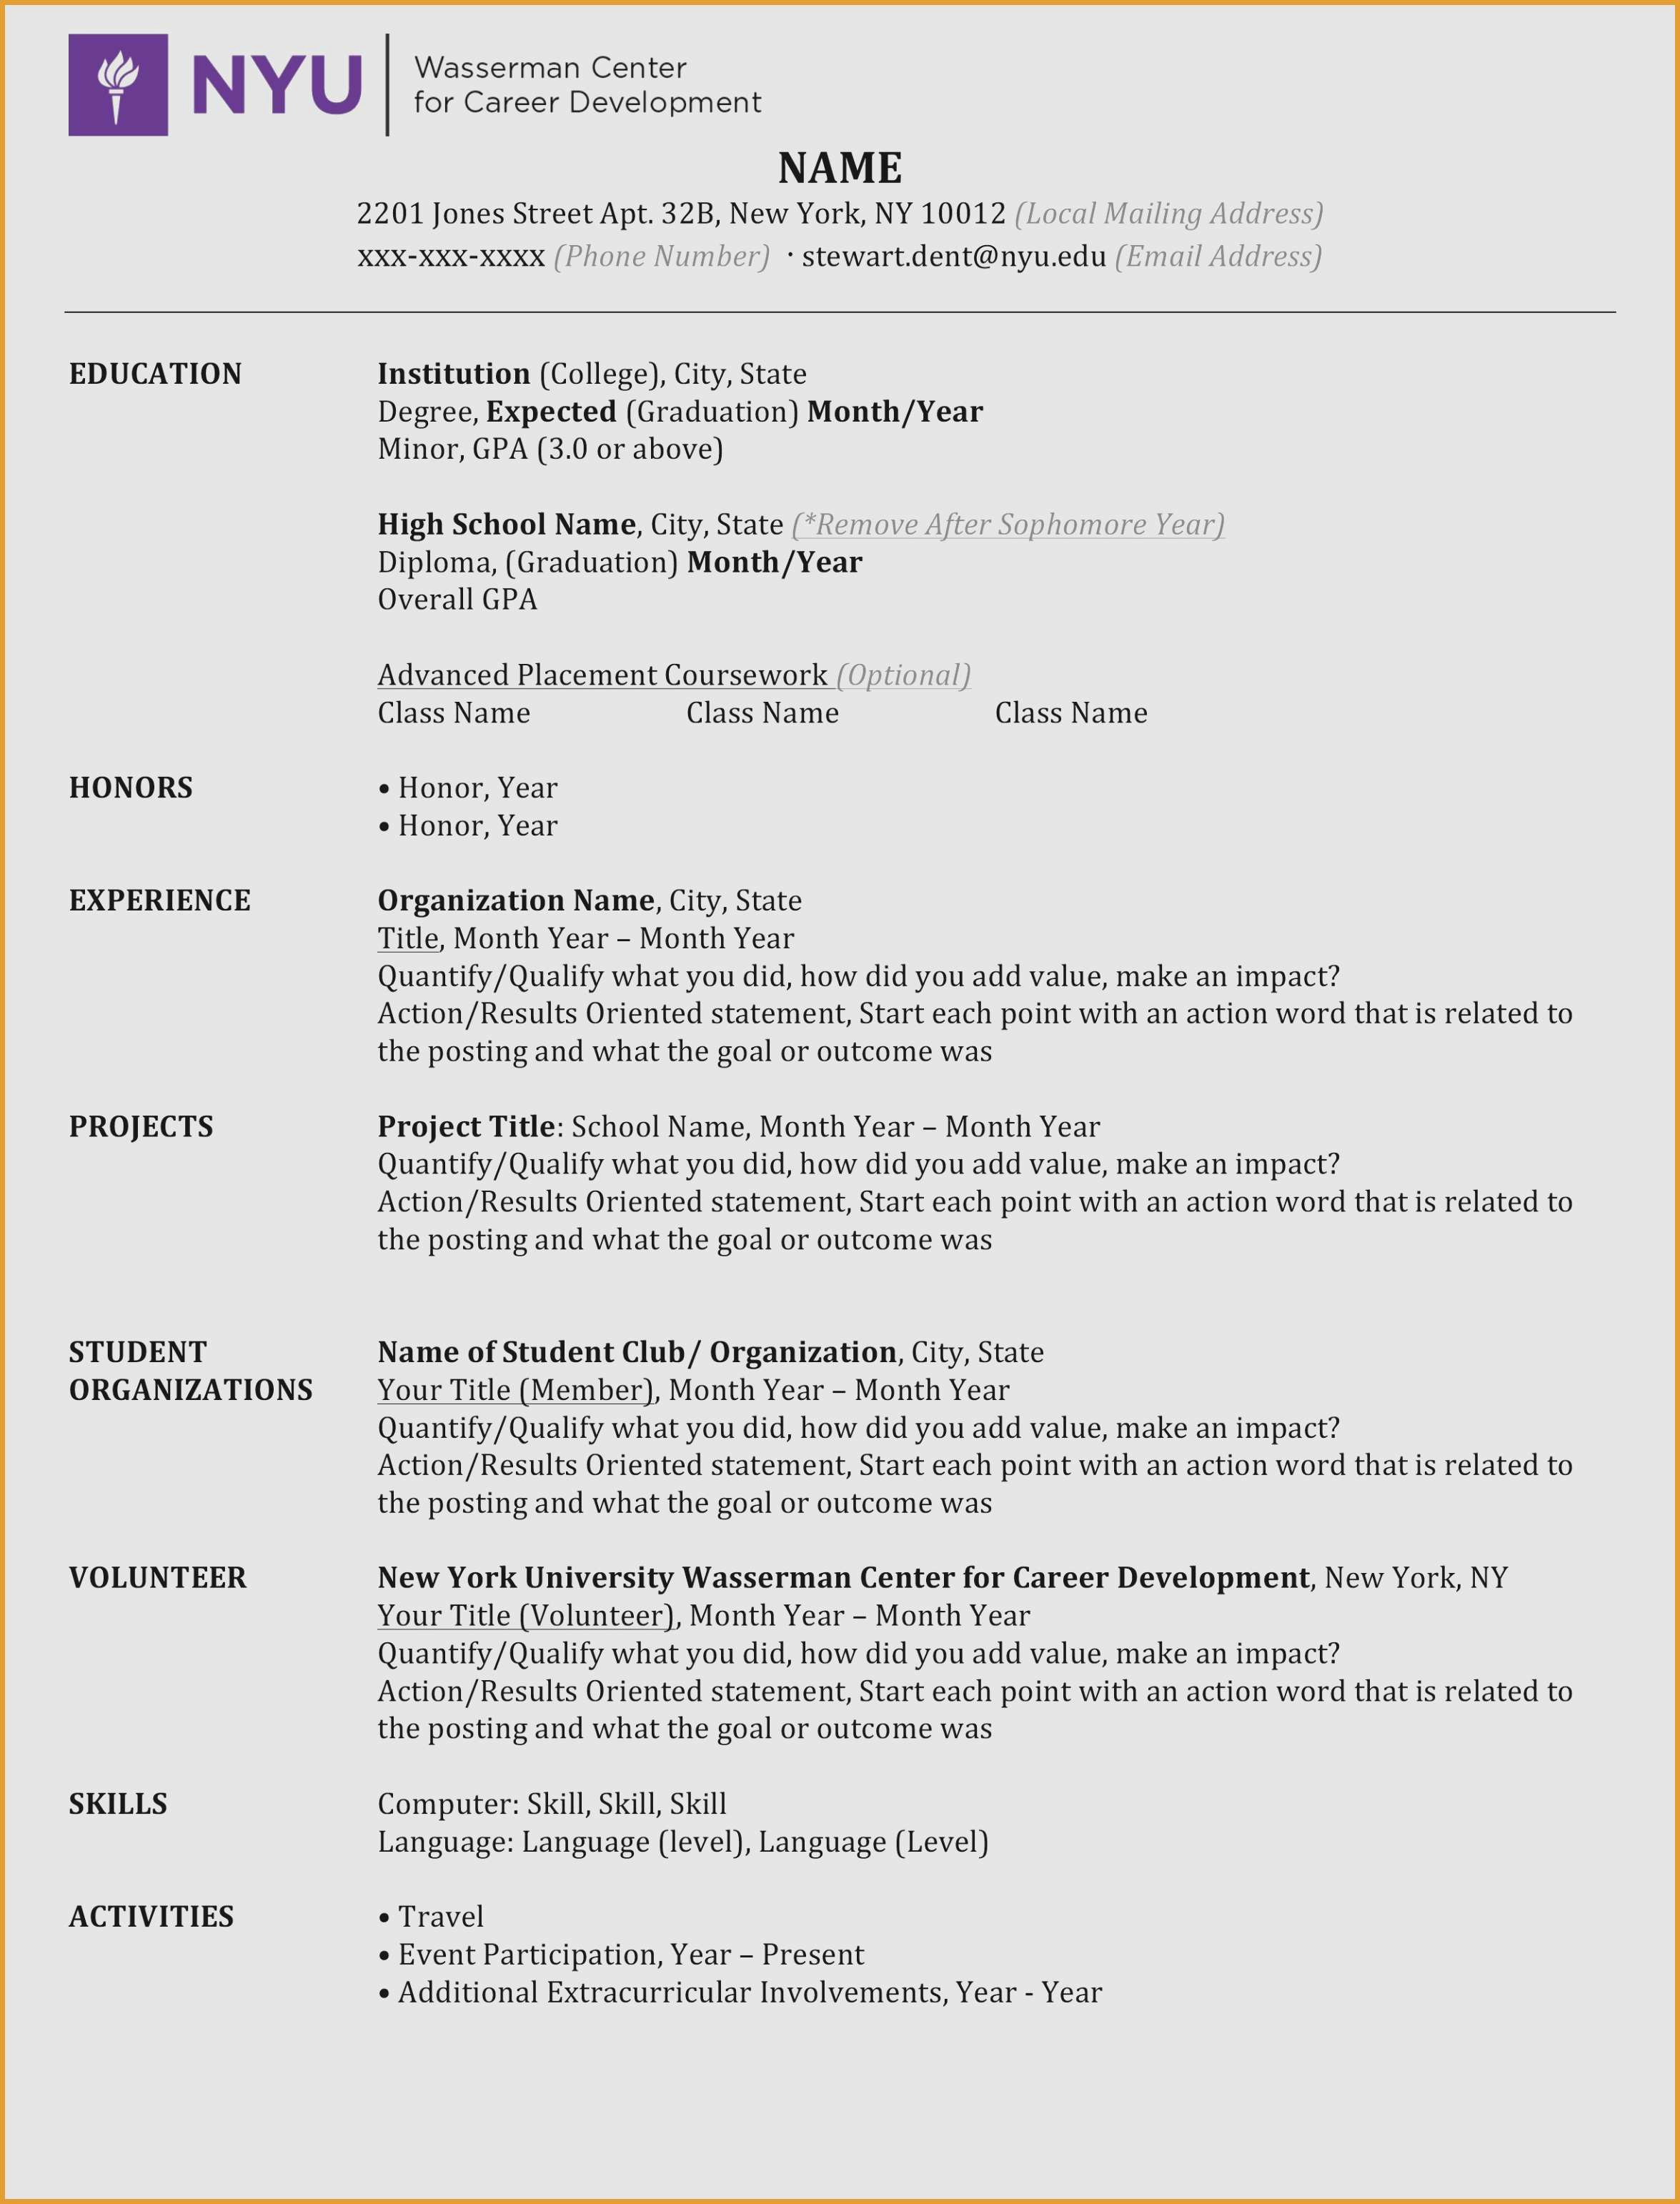 nyu resume template example-Nyu Resume Template Security Resume Examples Help Desk Resume Examples Elegant 9-g